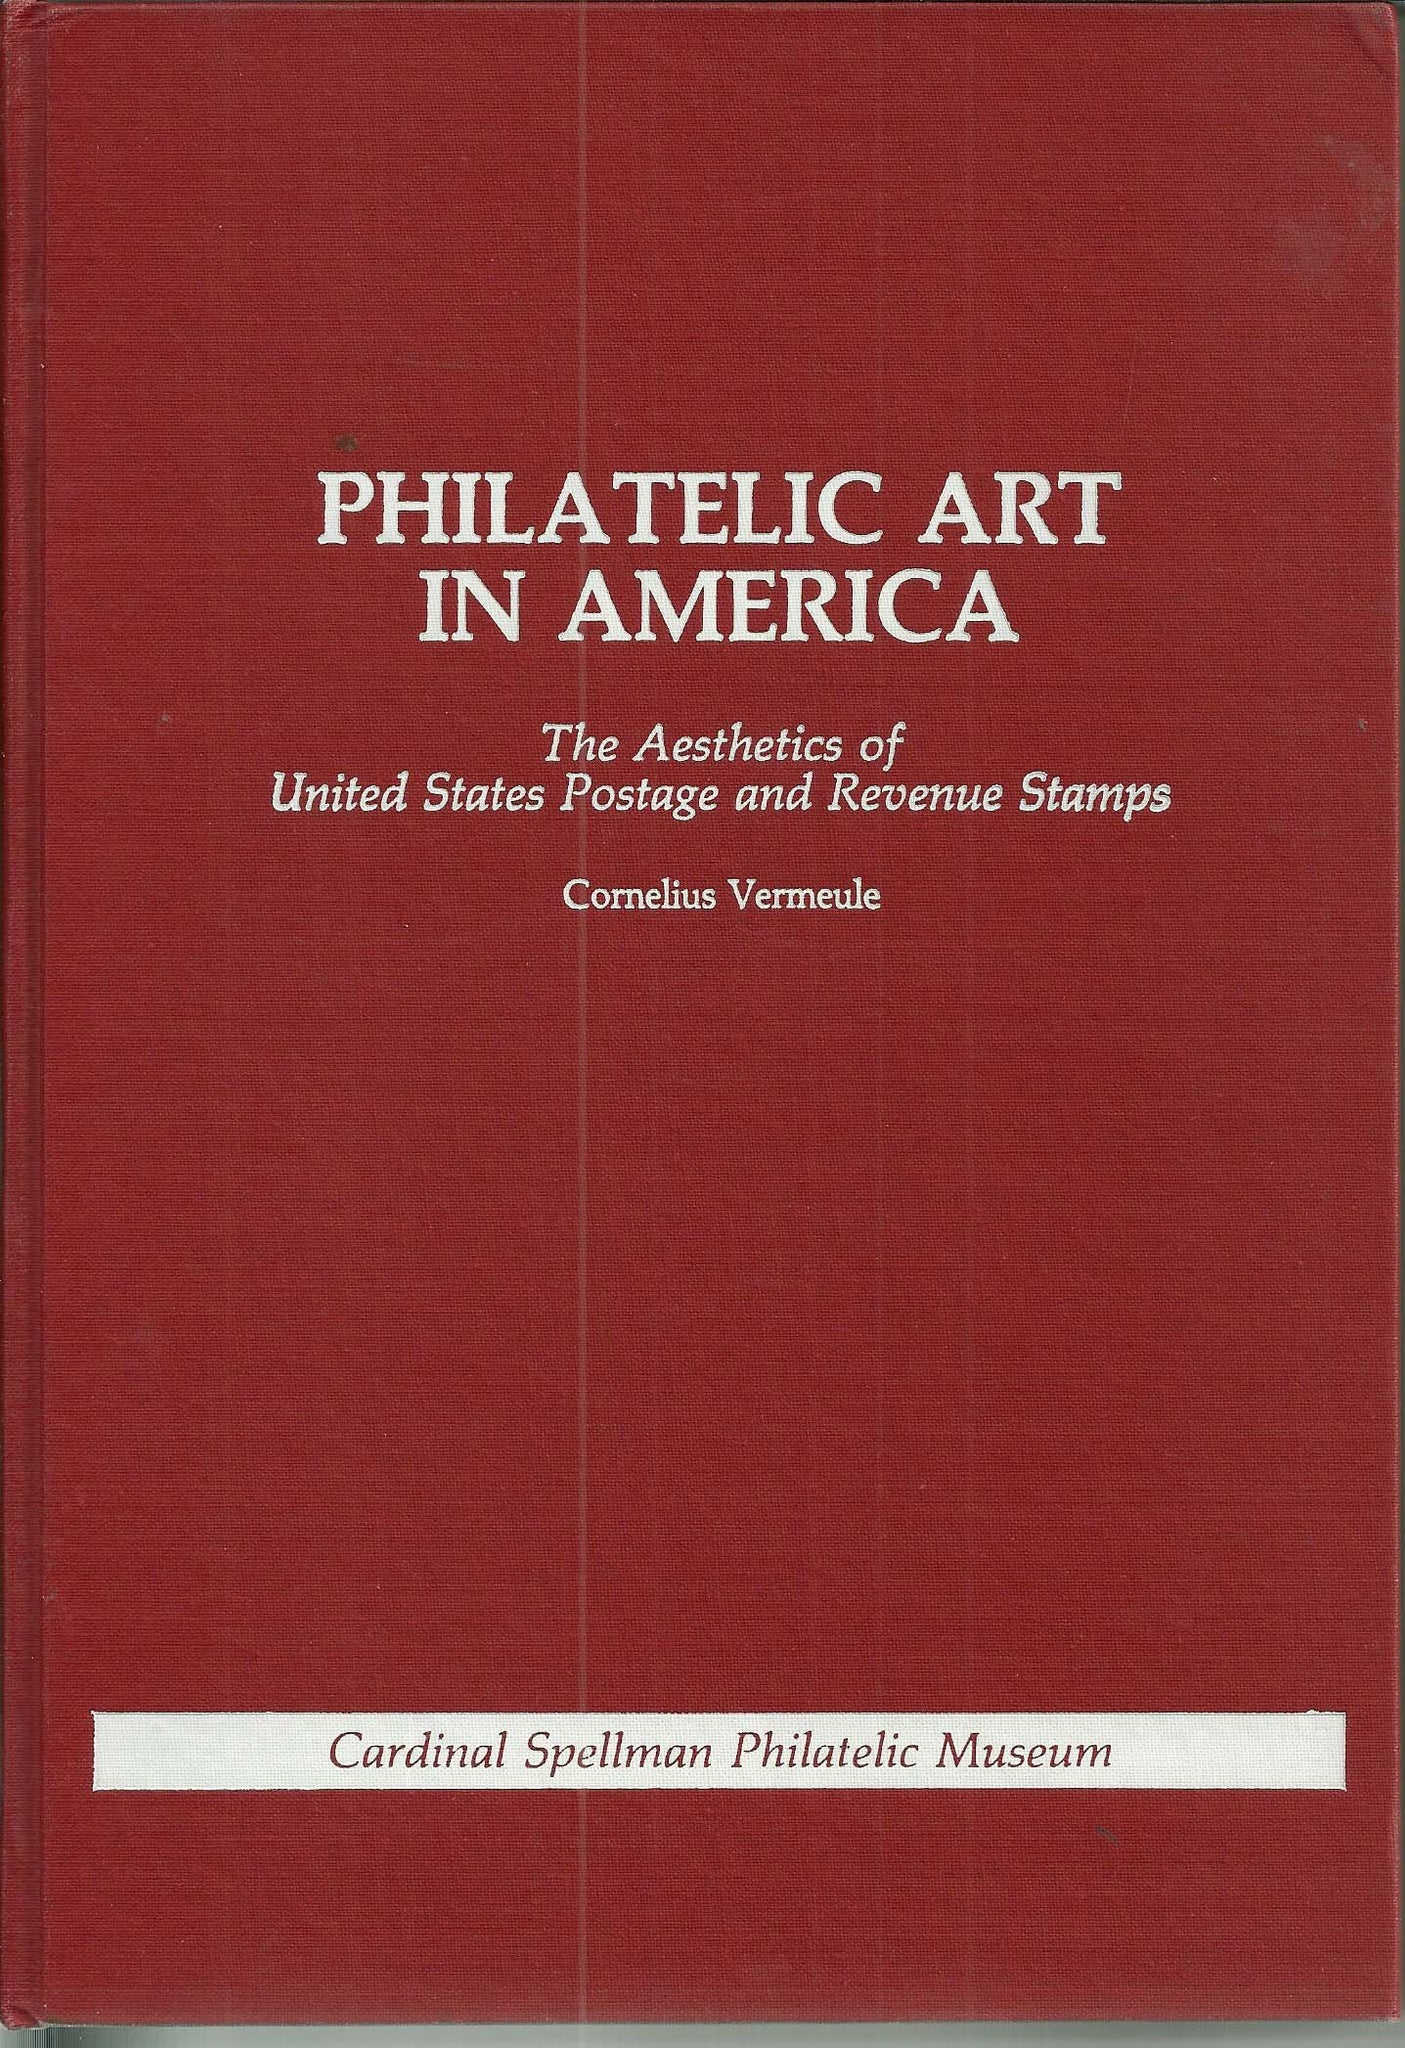 Philatelic Art in America